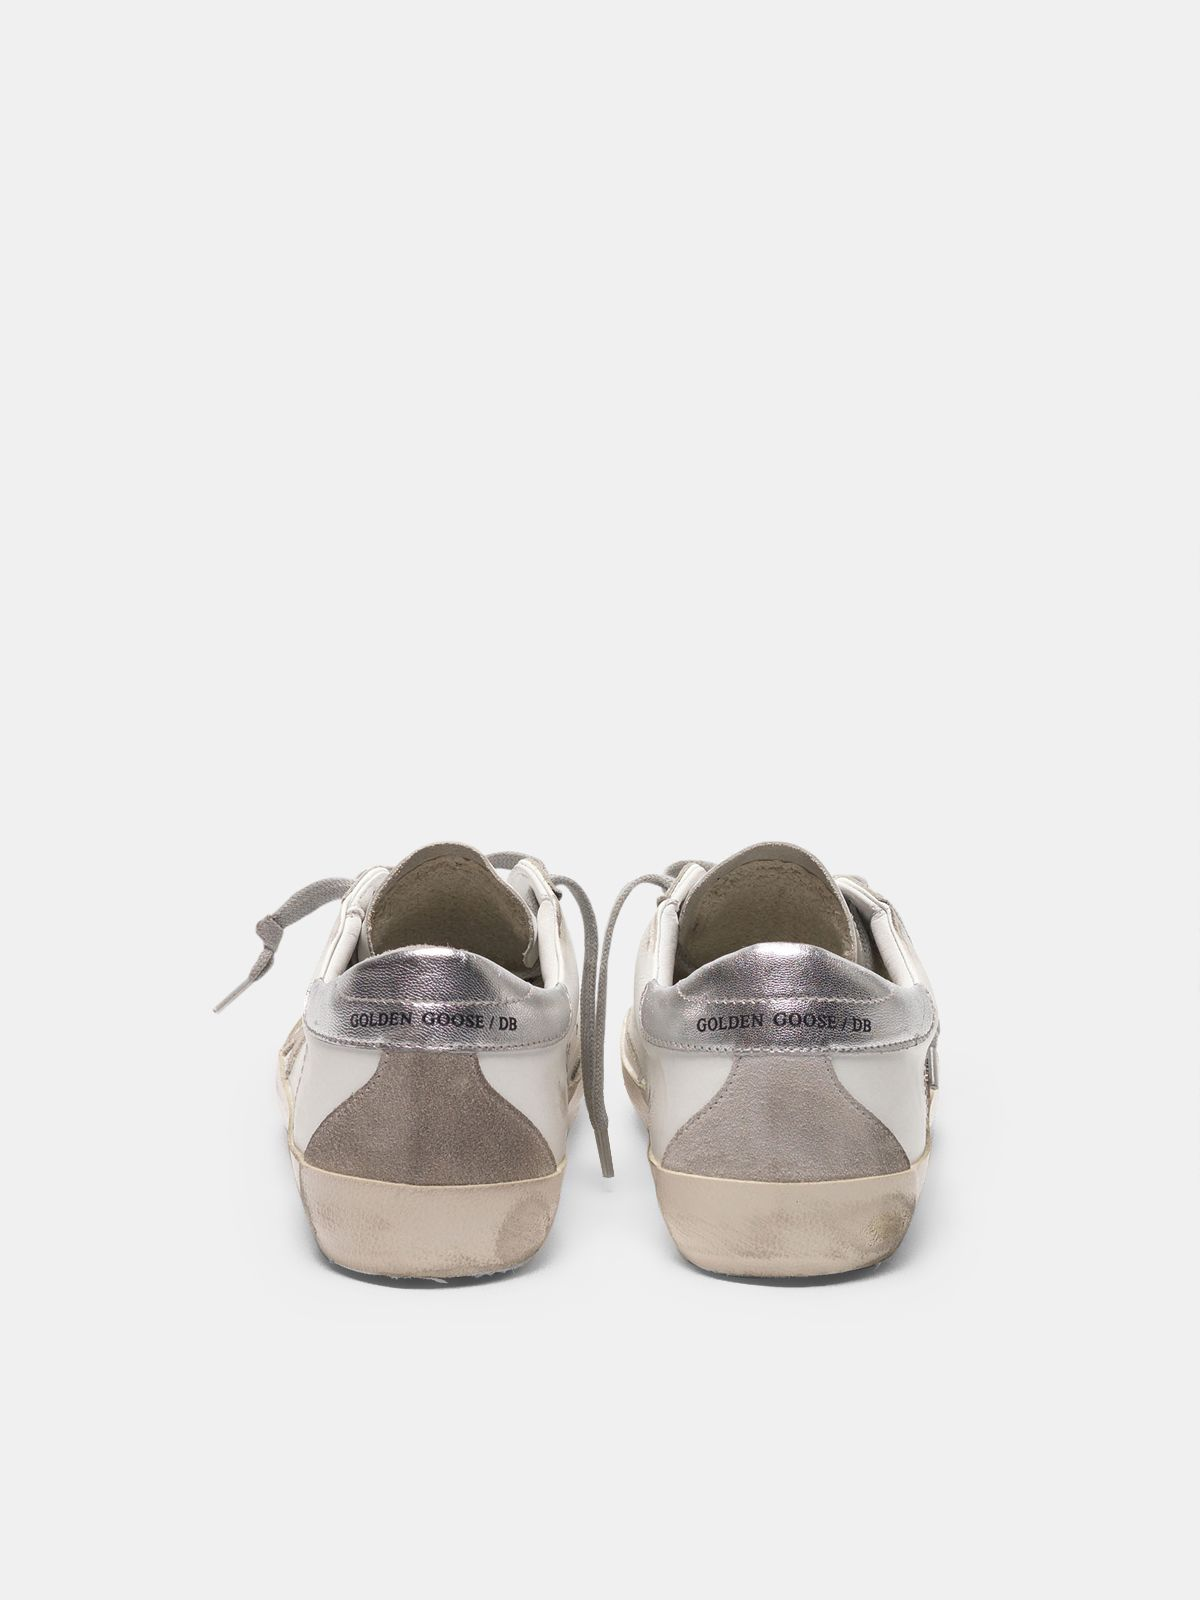 Golden Goose - Super-Star sneakers with silver heel tab and metal stud lettering in